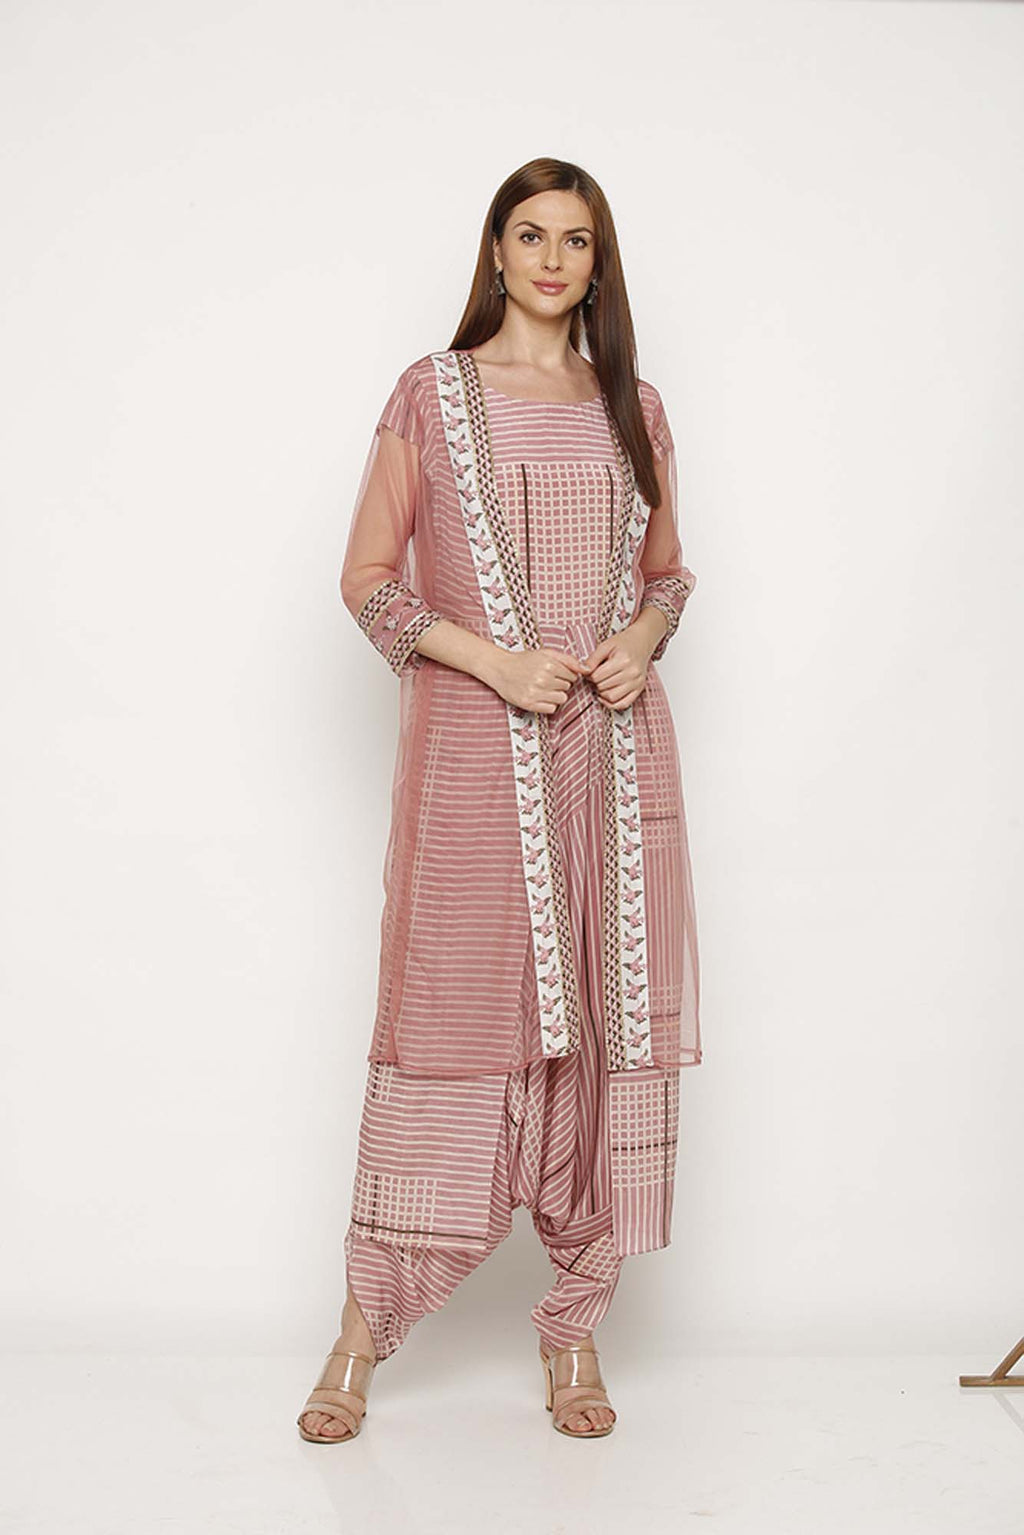 Printed Pink Dhoti Jumpsuit with Jacket - Riviera Closet